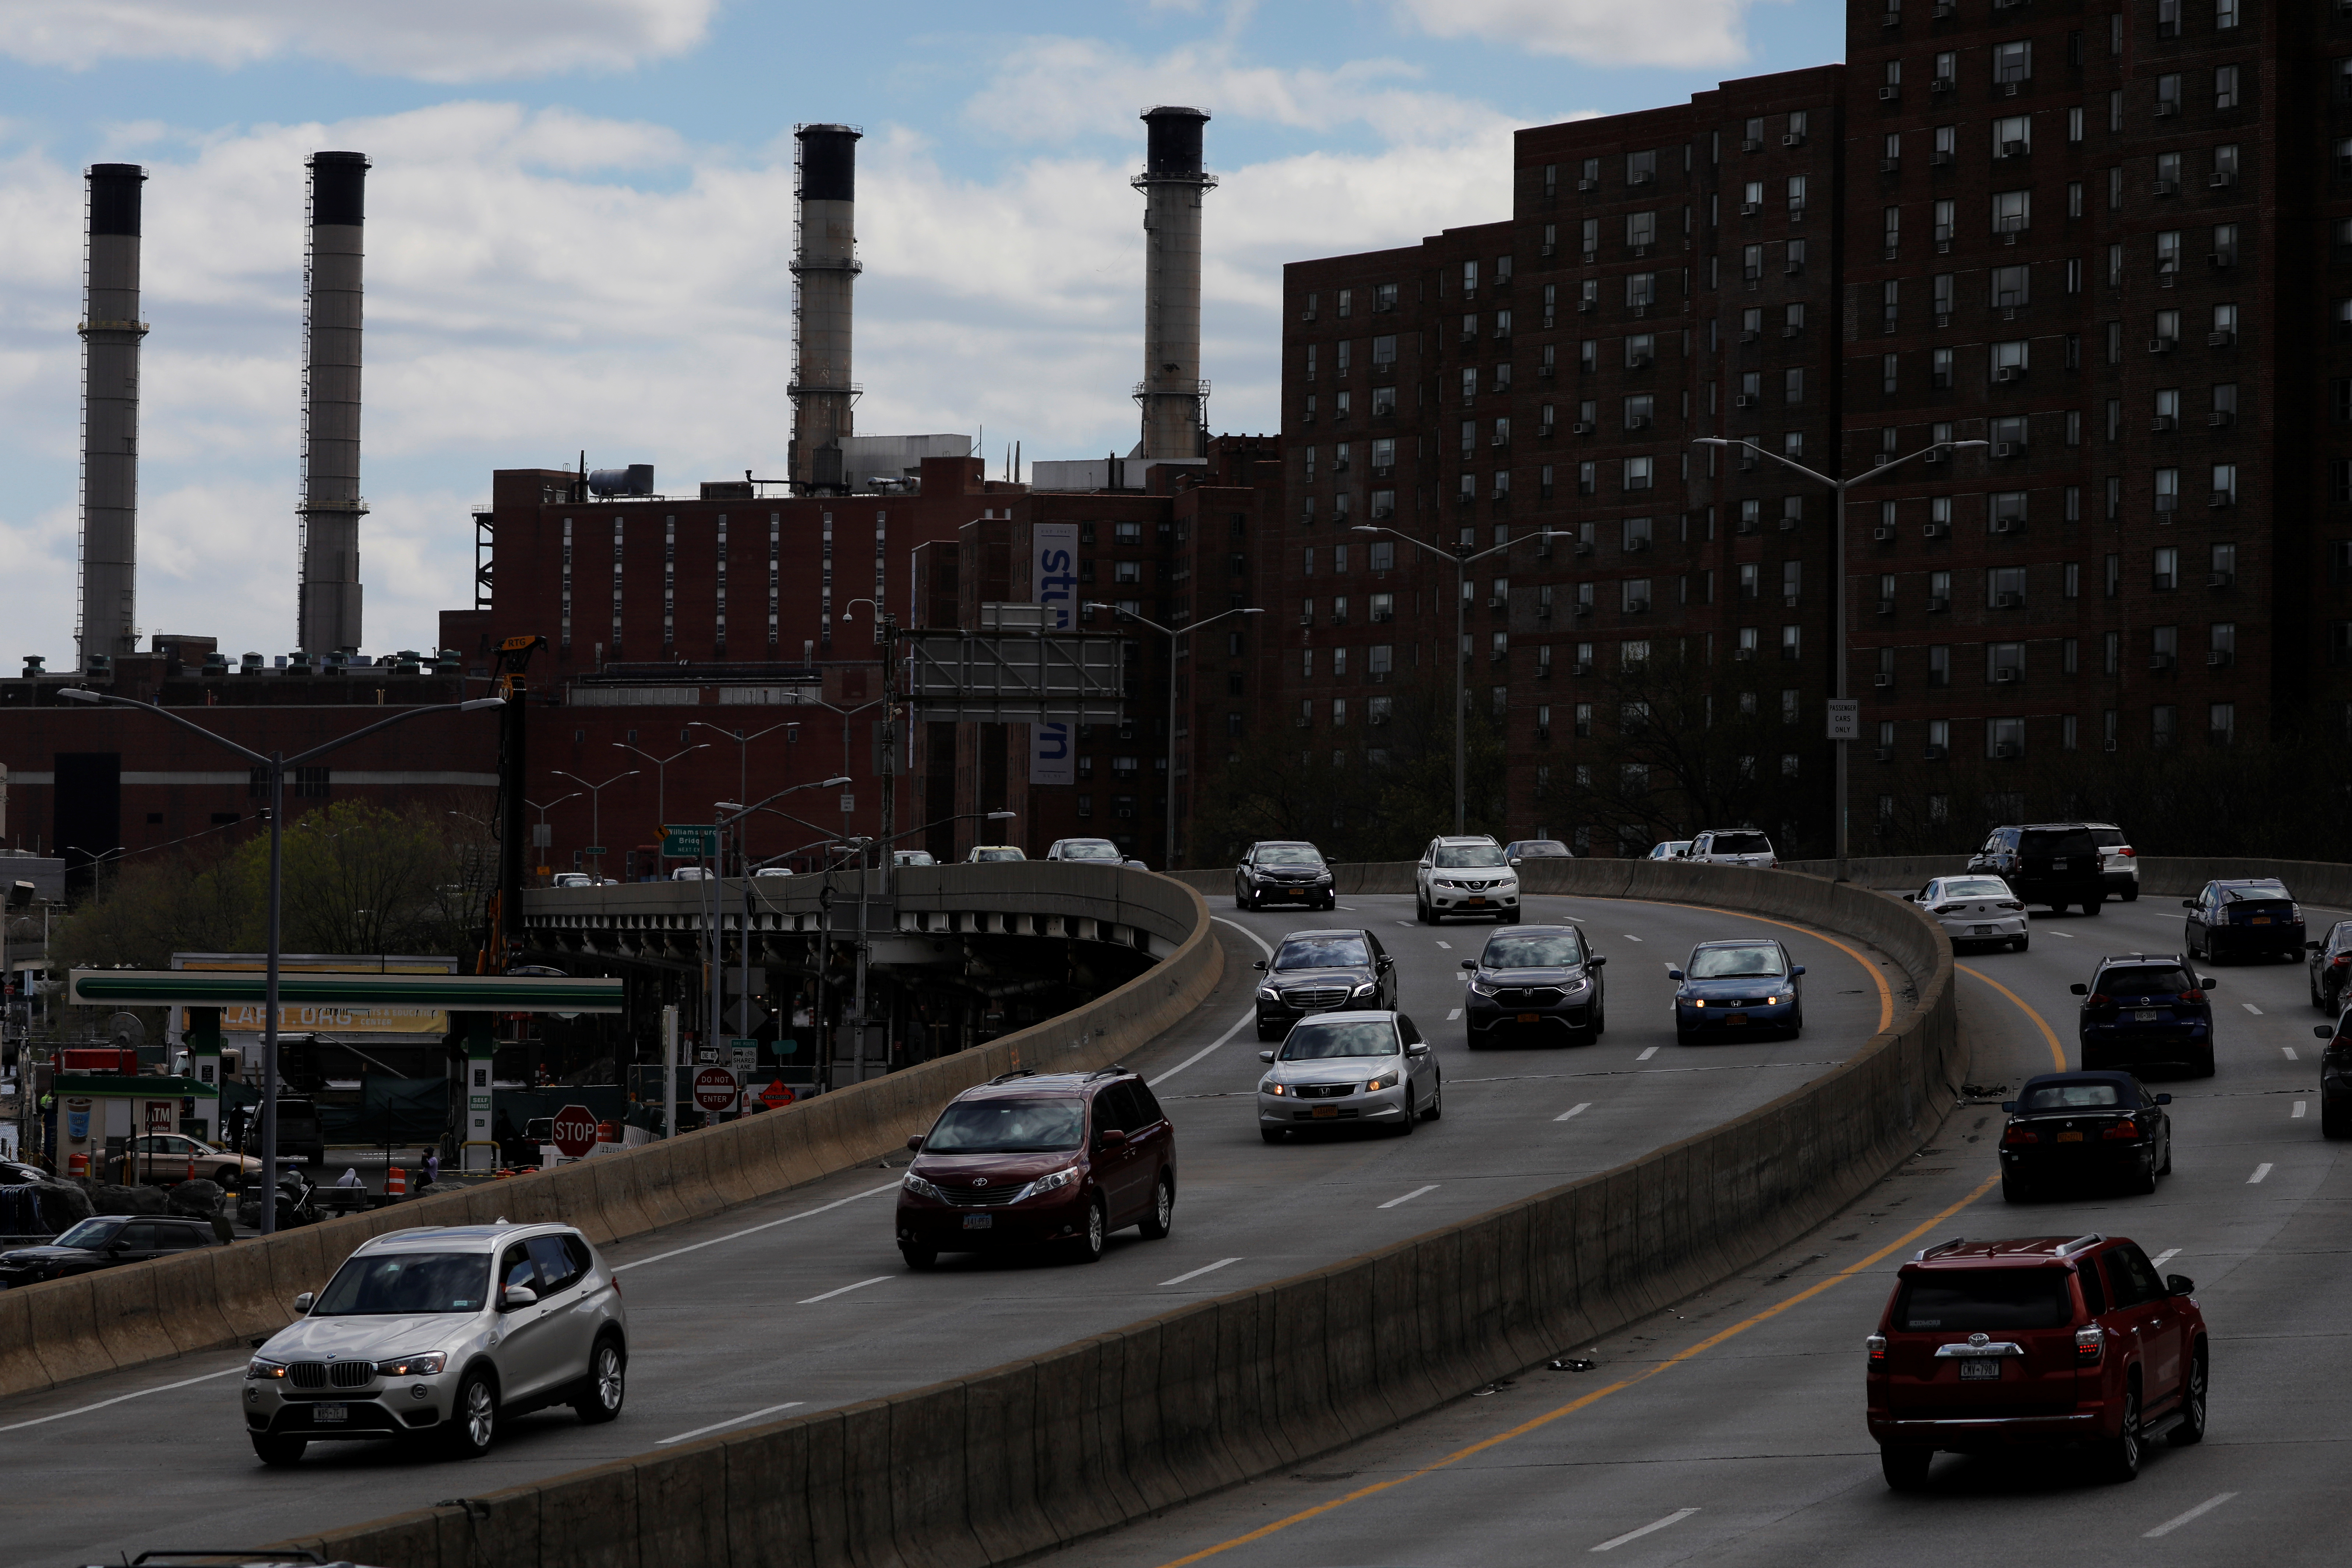 Cars travel along the FDR Drive in Manhattan, New York City, New York, U.S., April 22, 2021. REUTERS/Andrew Kelly